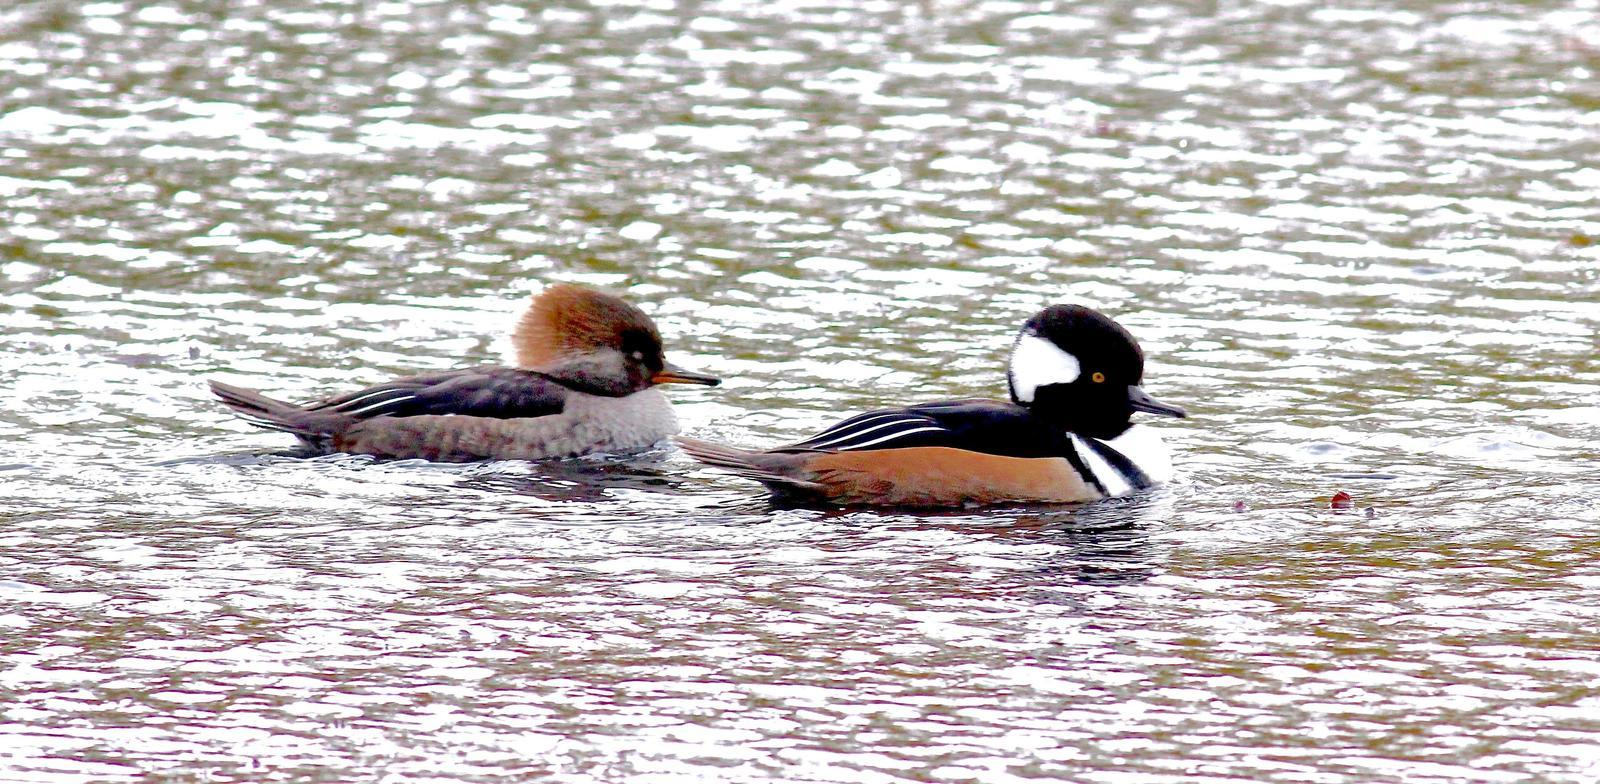 Hooded Merganser Photo by Kathryn Keith